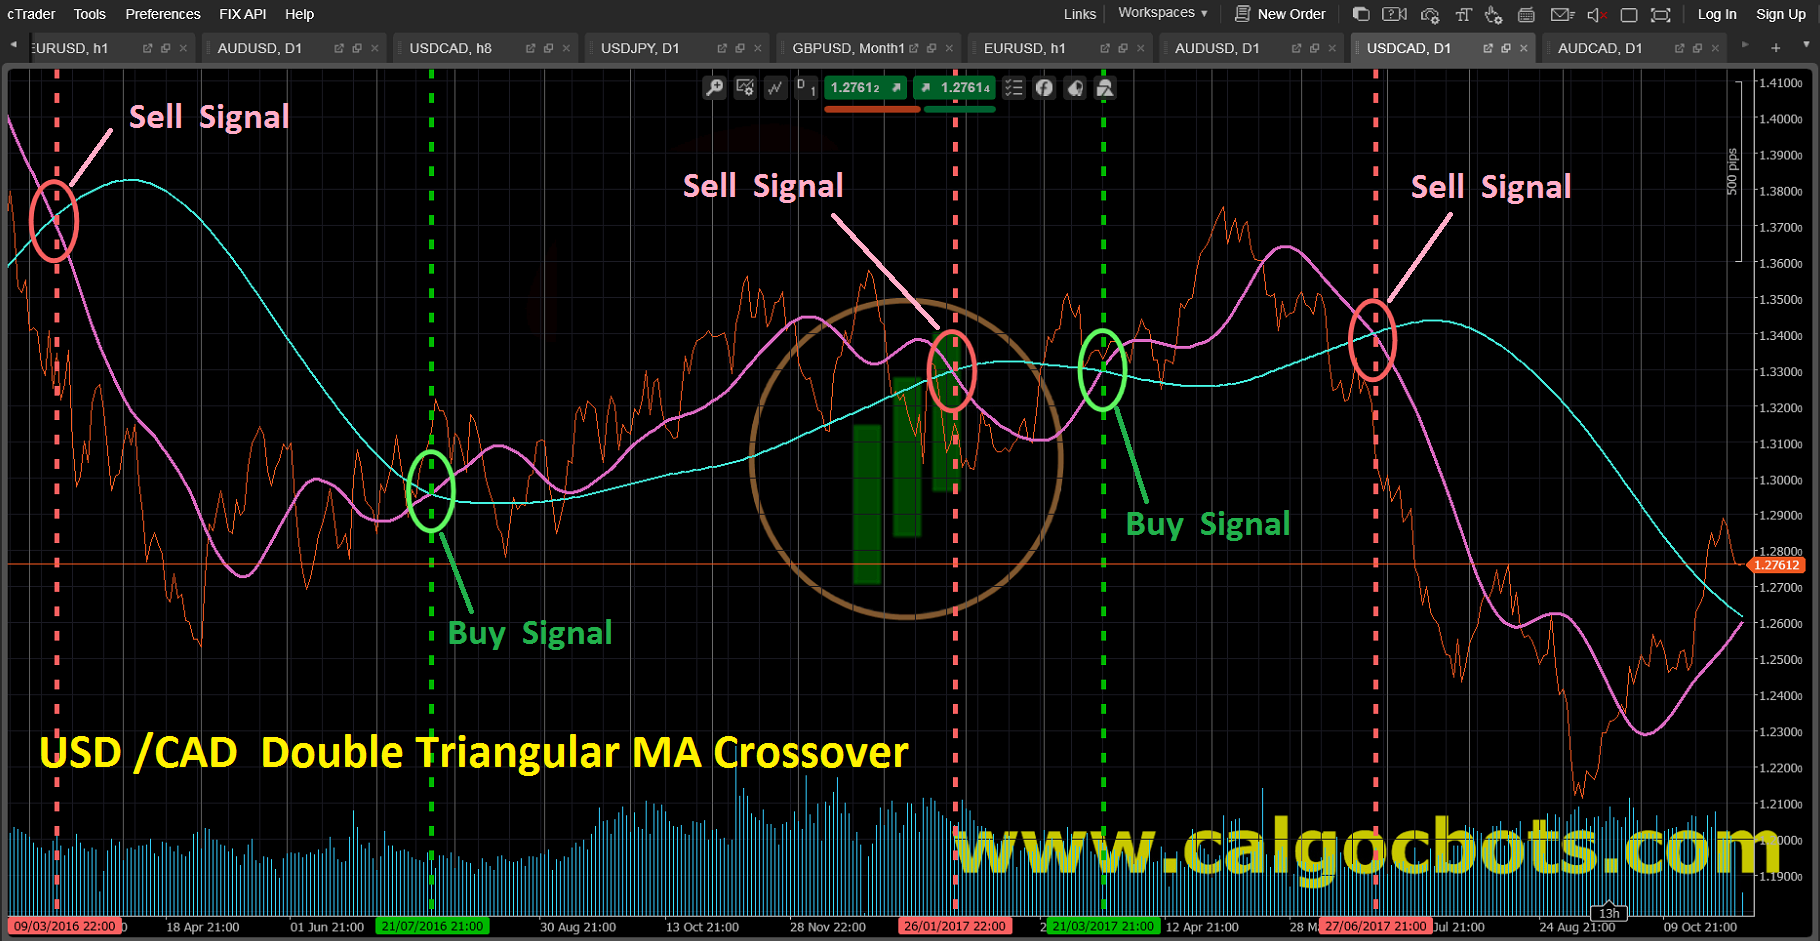 Double Triangularl MA crossover_USD_CAD_Line_chart_cAlgo_cBots_cTrader_01